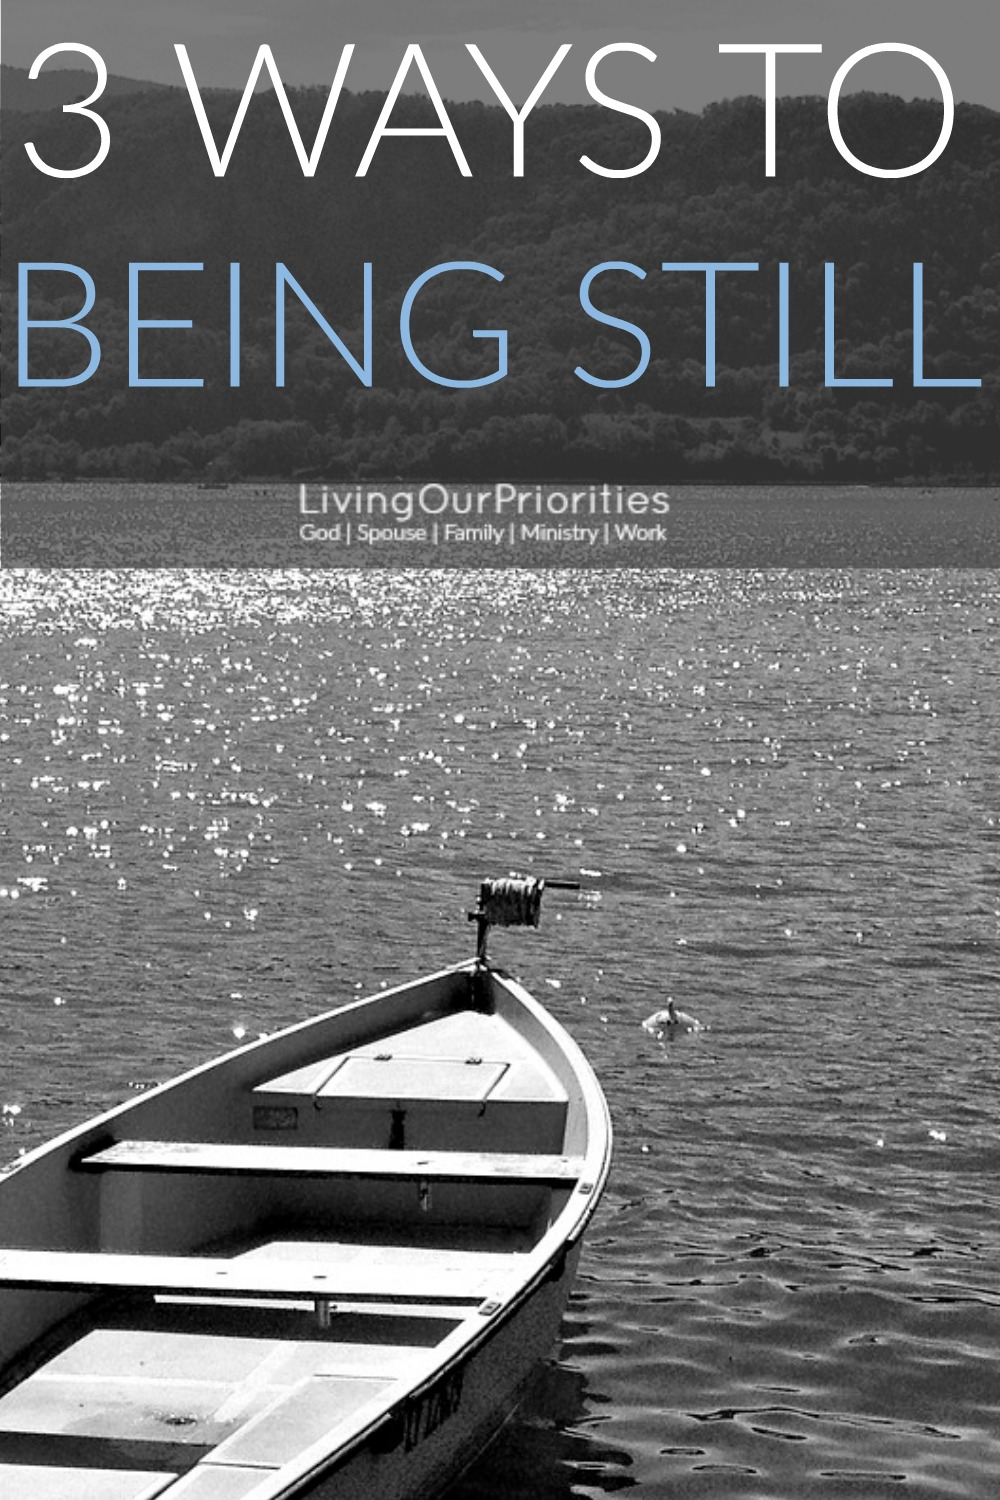 Being still in the Lord does not mean we do nothing. Rather we must be still in the doing. What do I mean by that? Read more to find out.